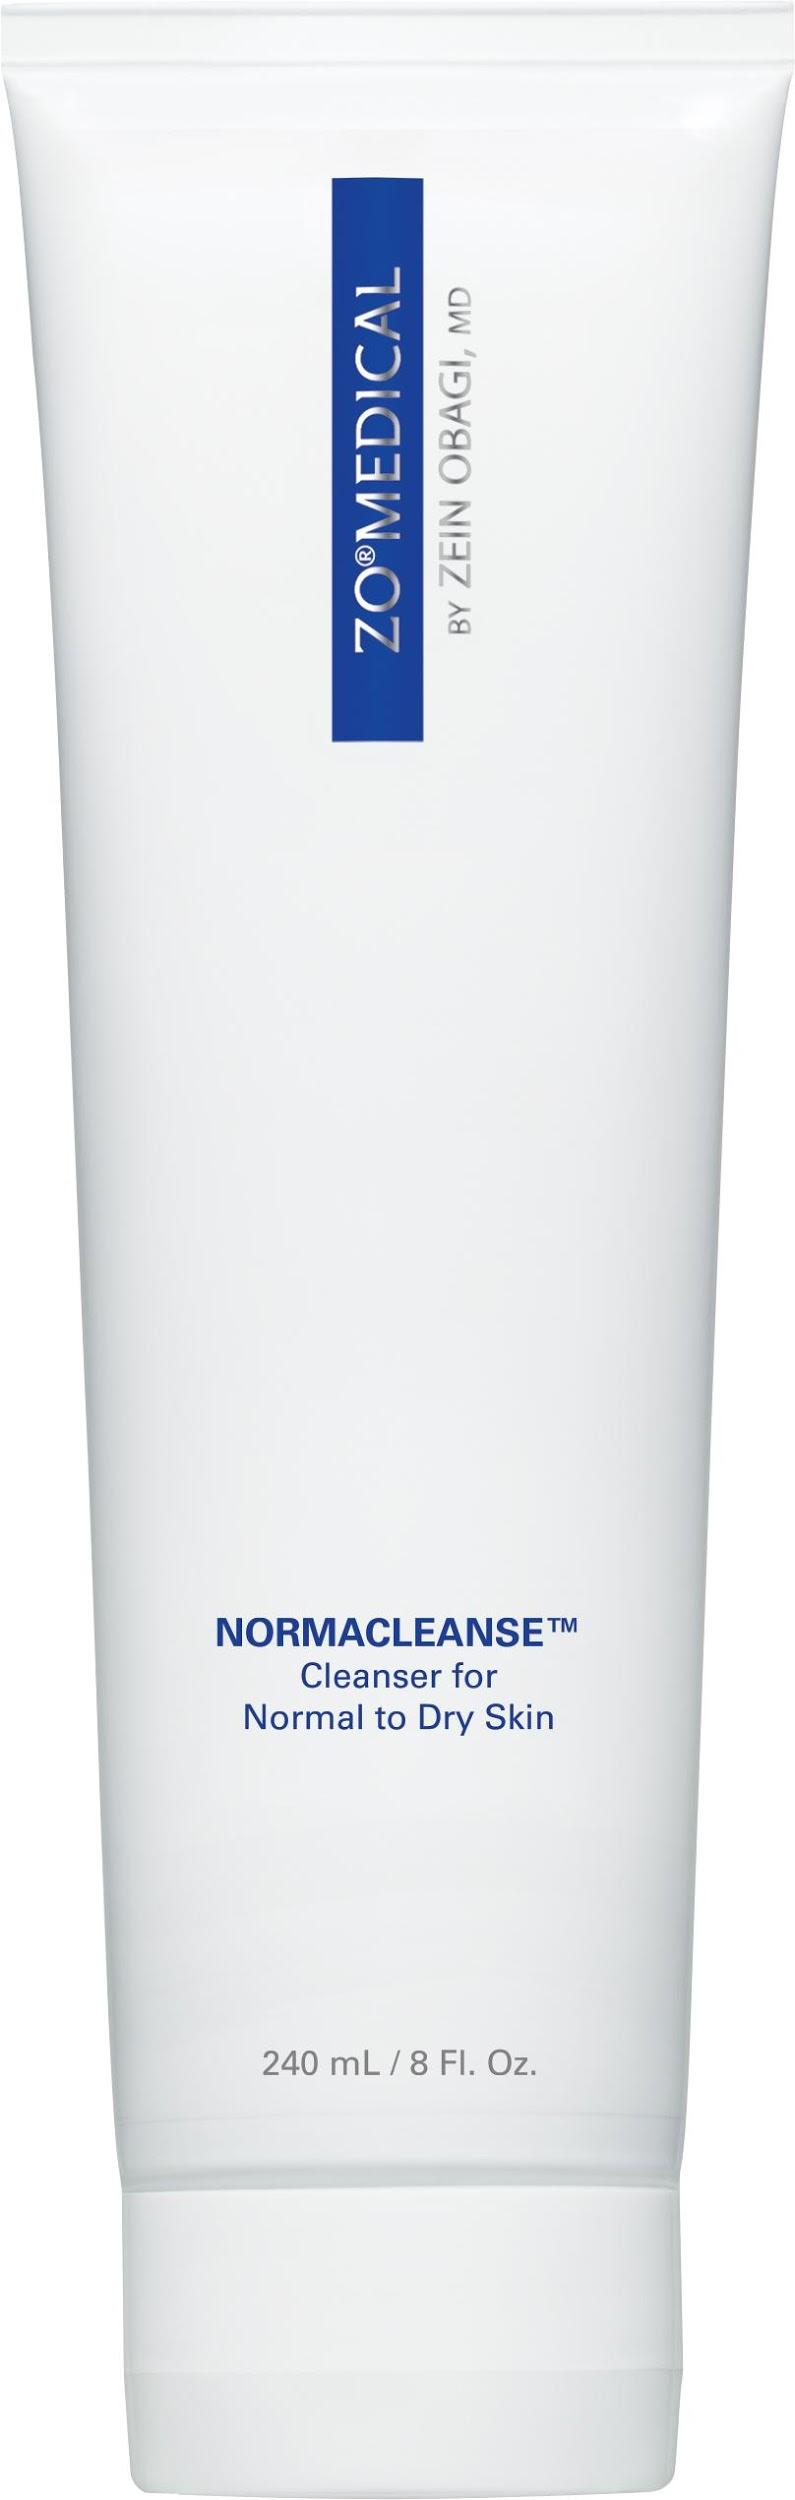 Normacleanse